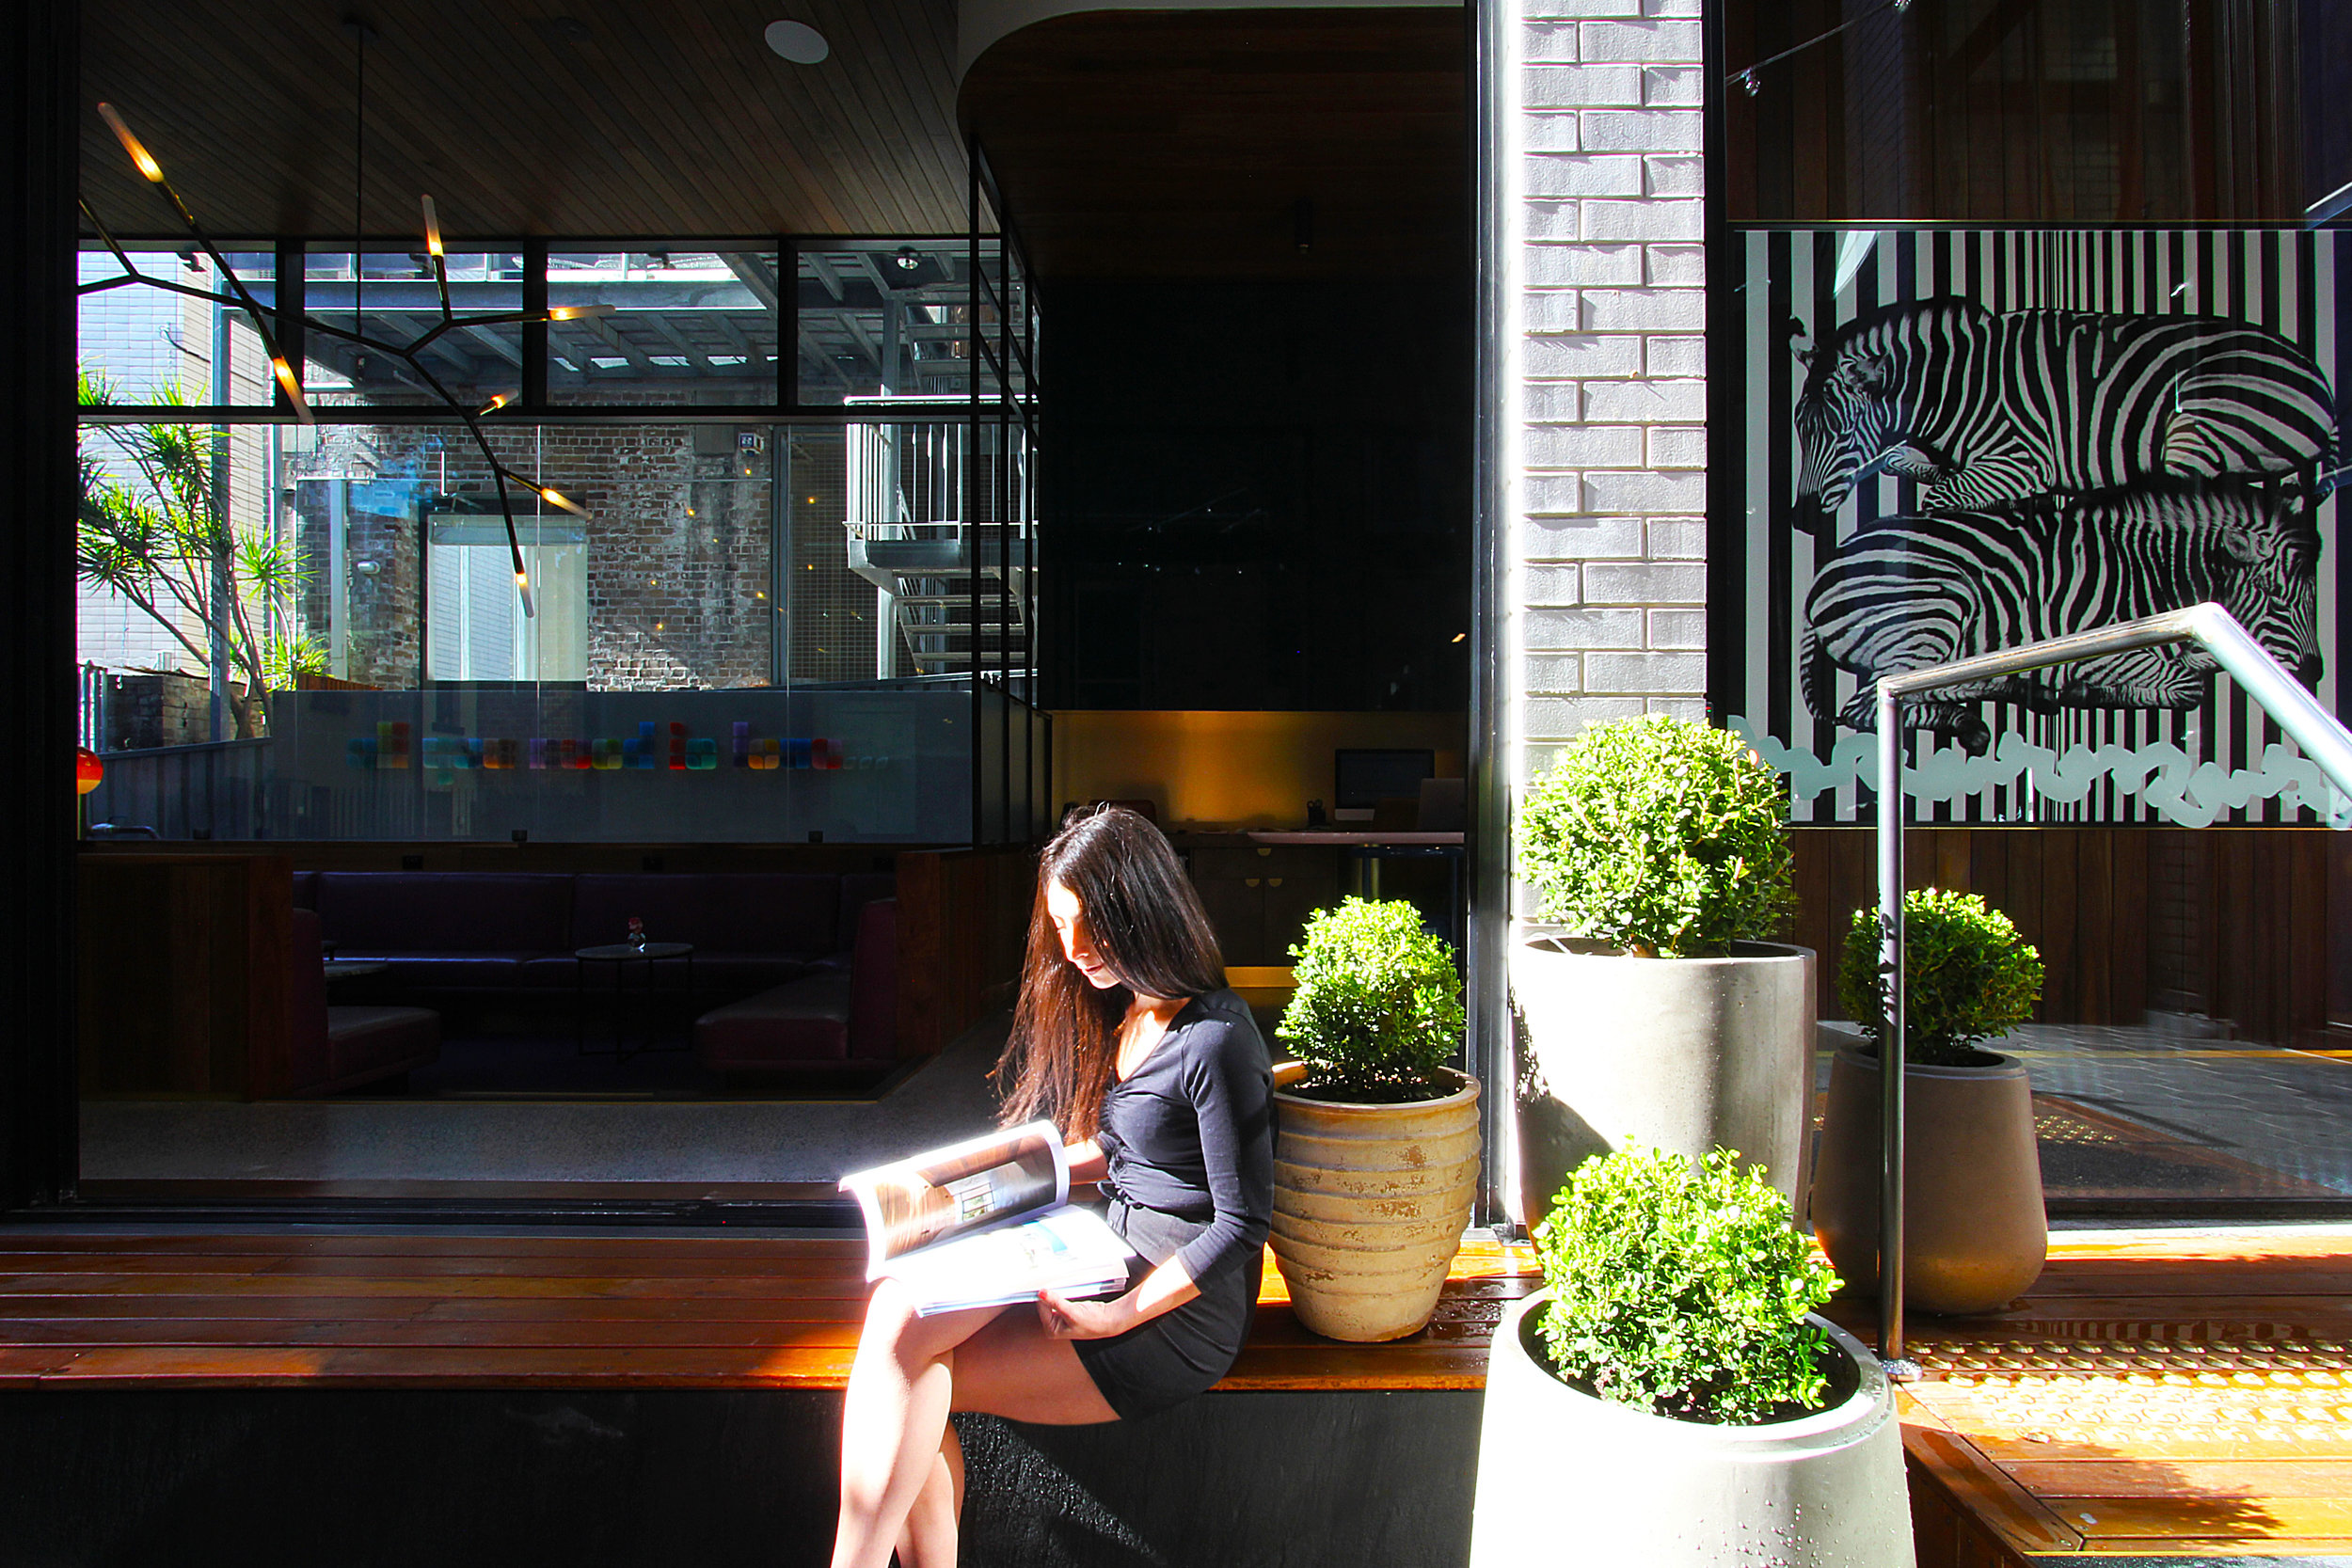 TYA Photography | Little Albion Guest House | Entrance Courtyard | Winter | Morning 01 | A8894.jpg